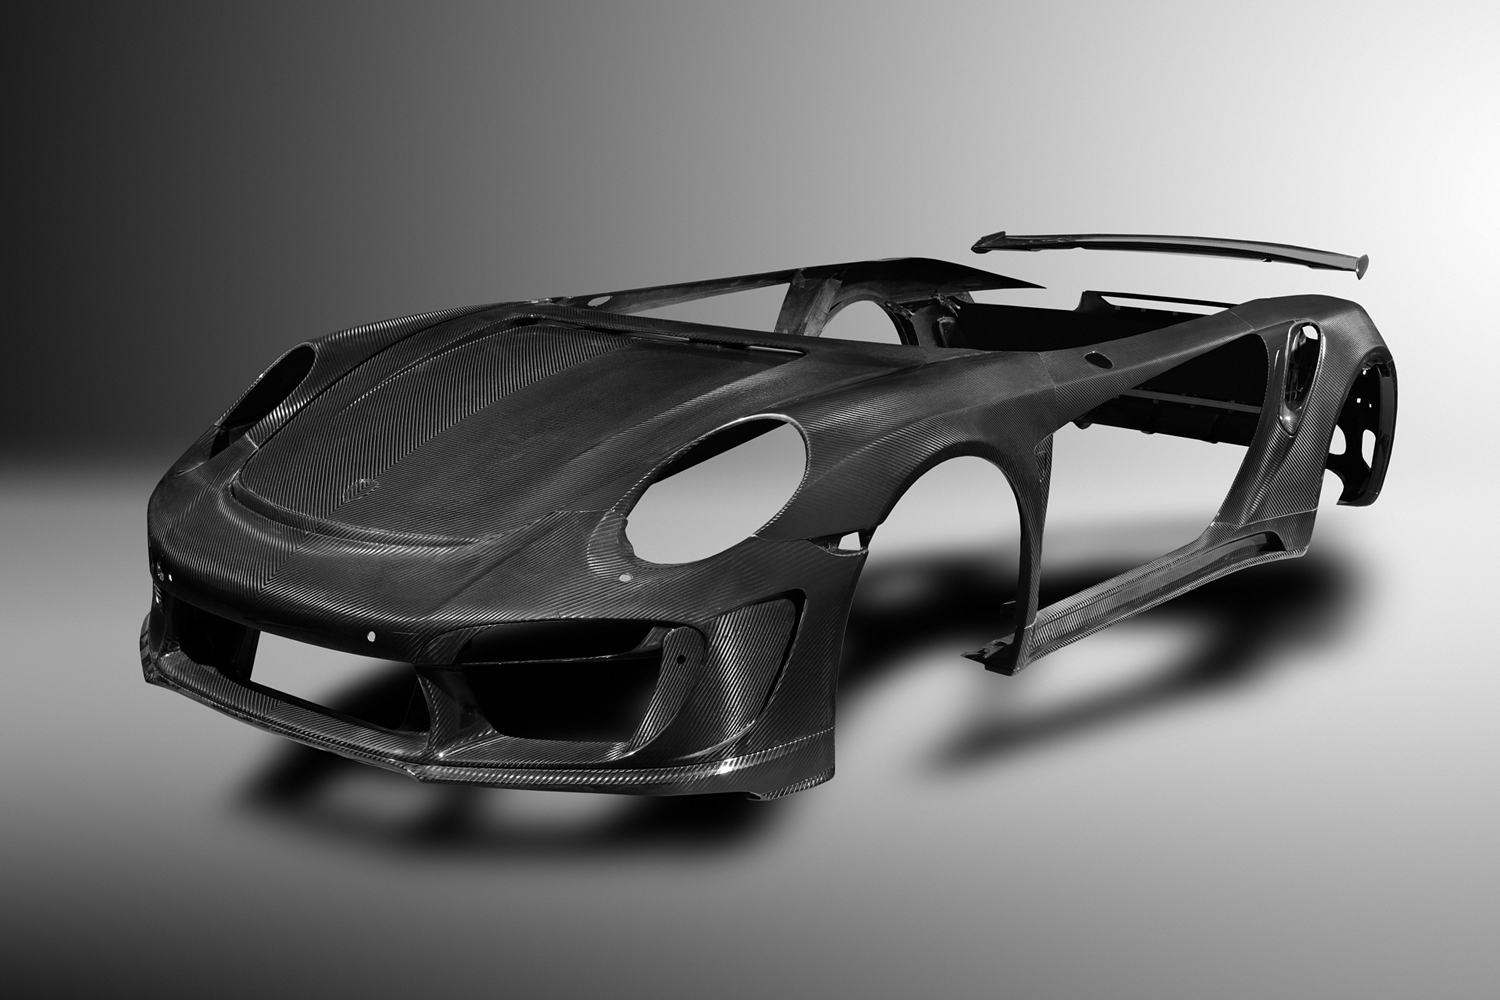 topcar makes complete carbon fiber body for porsche 991 turbo. Black Bedroom Furniture Sets. Home Design Ideas